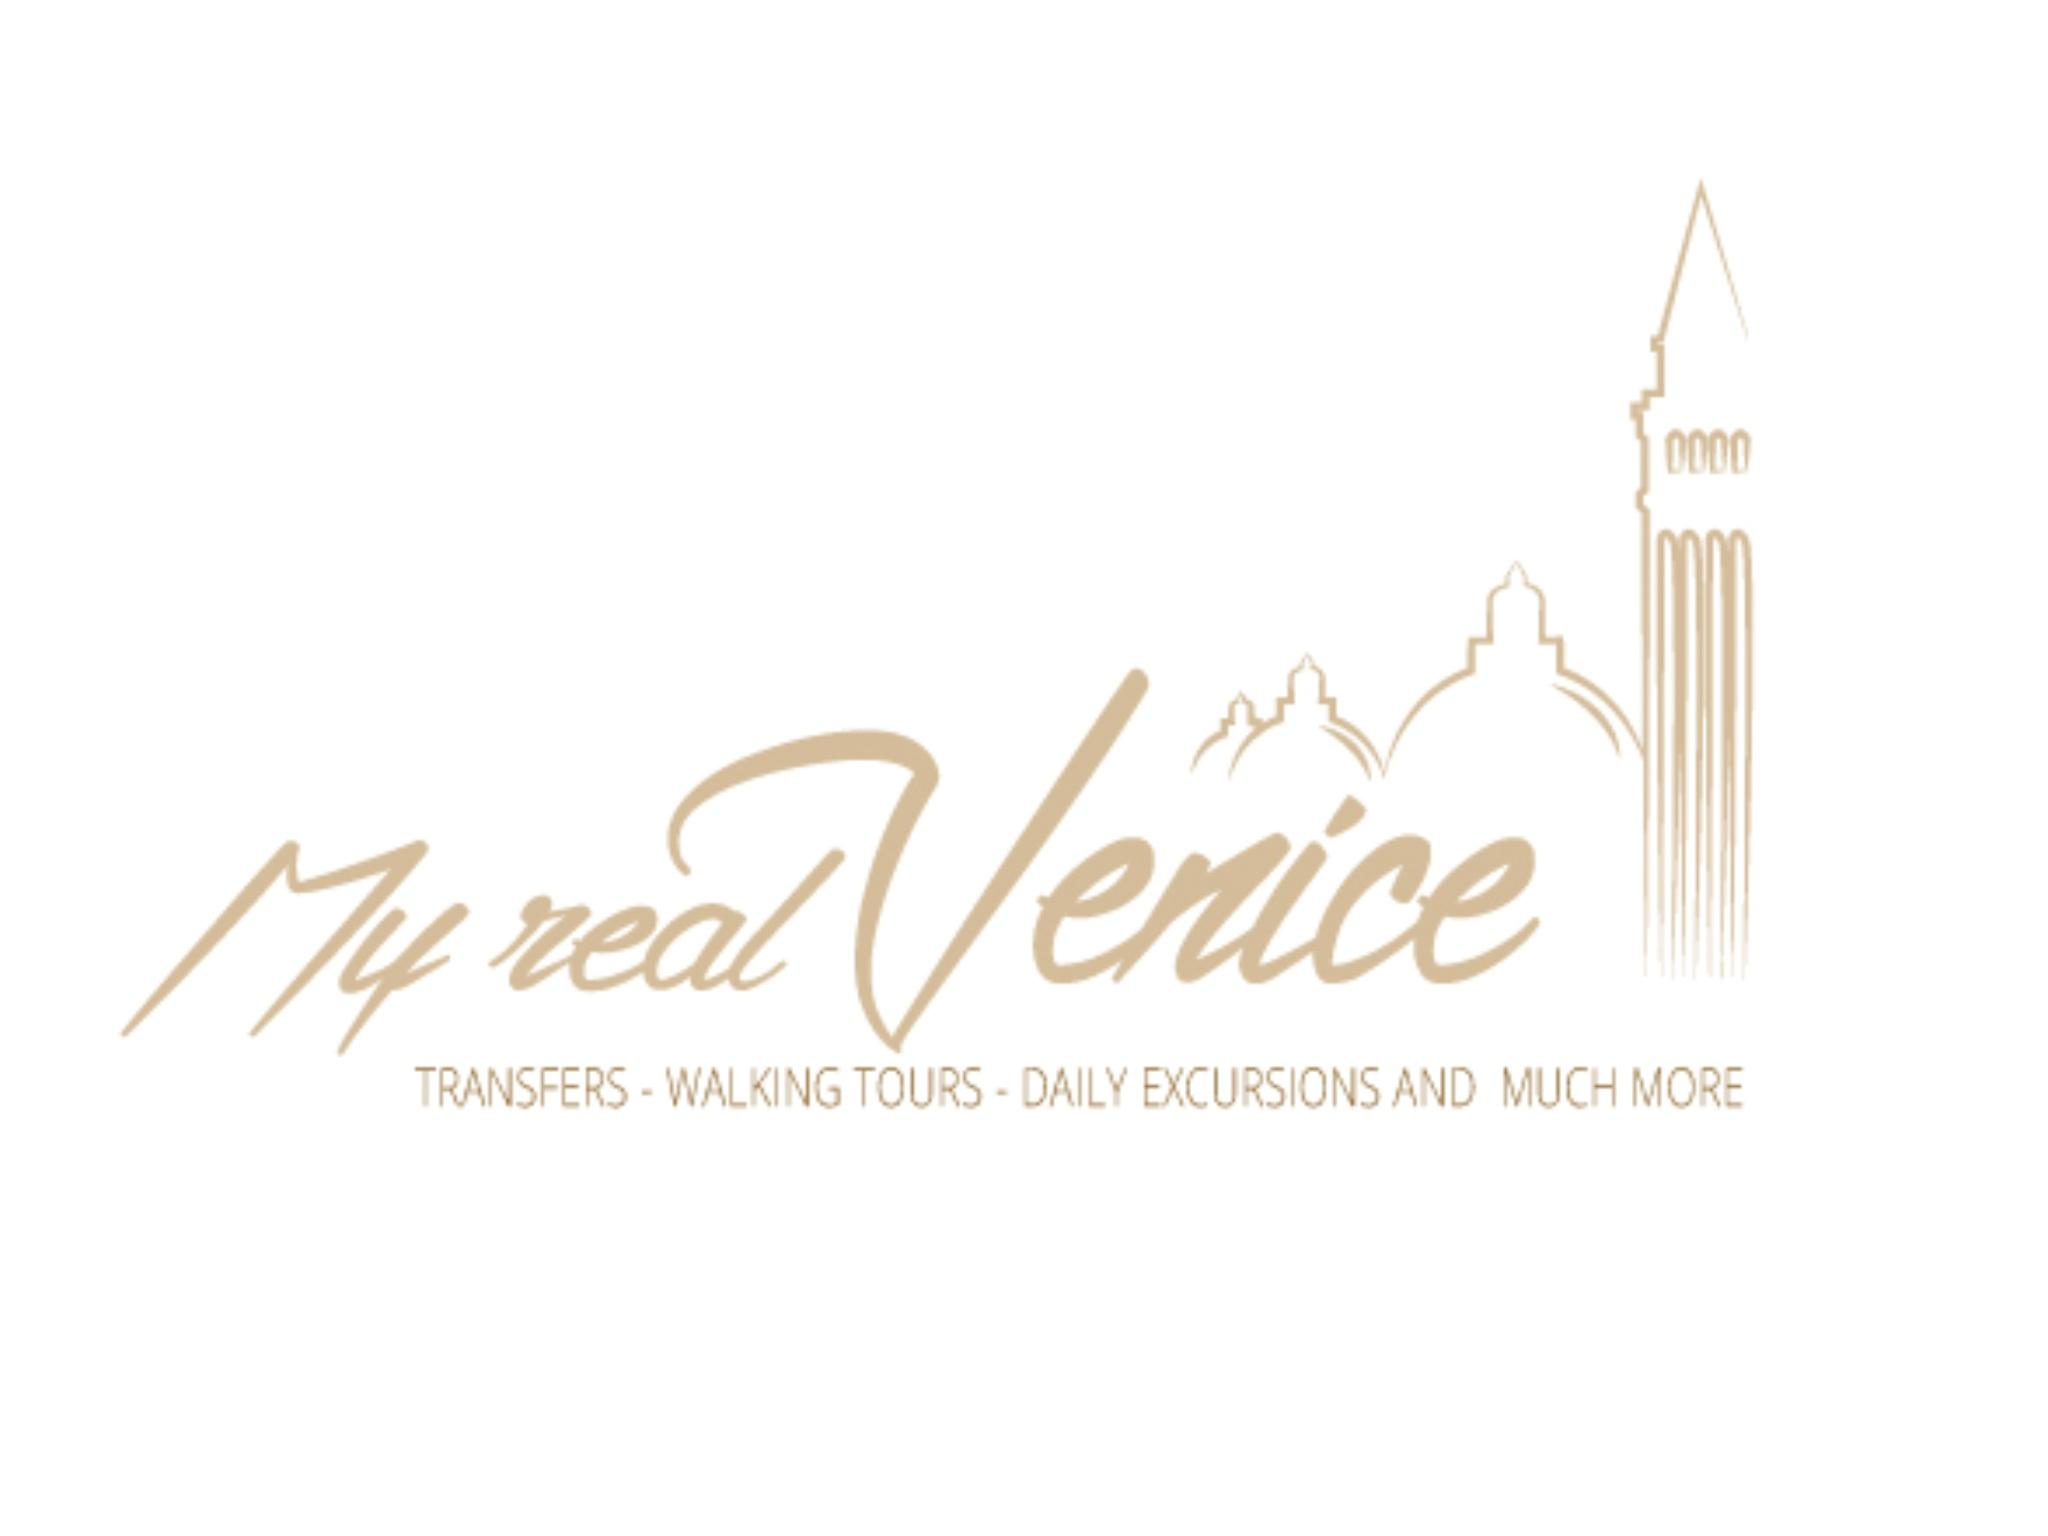 My Real Venice Day Tours